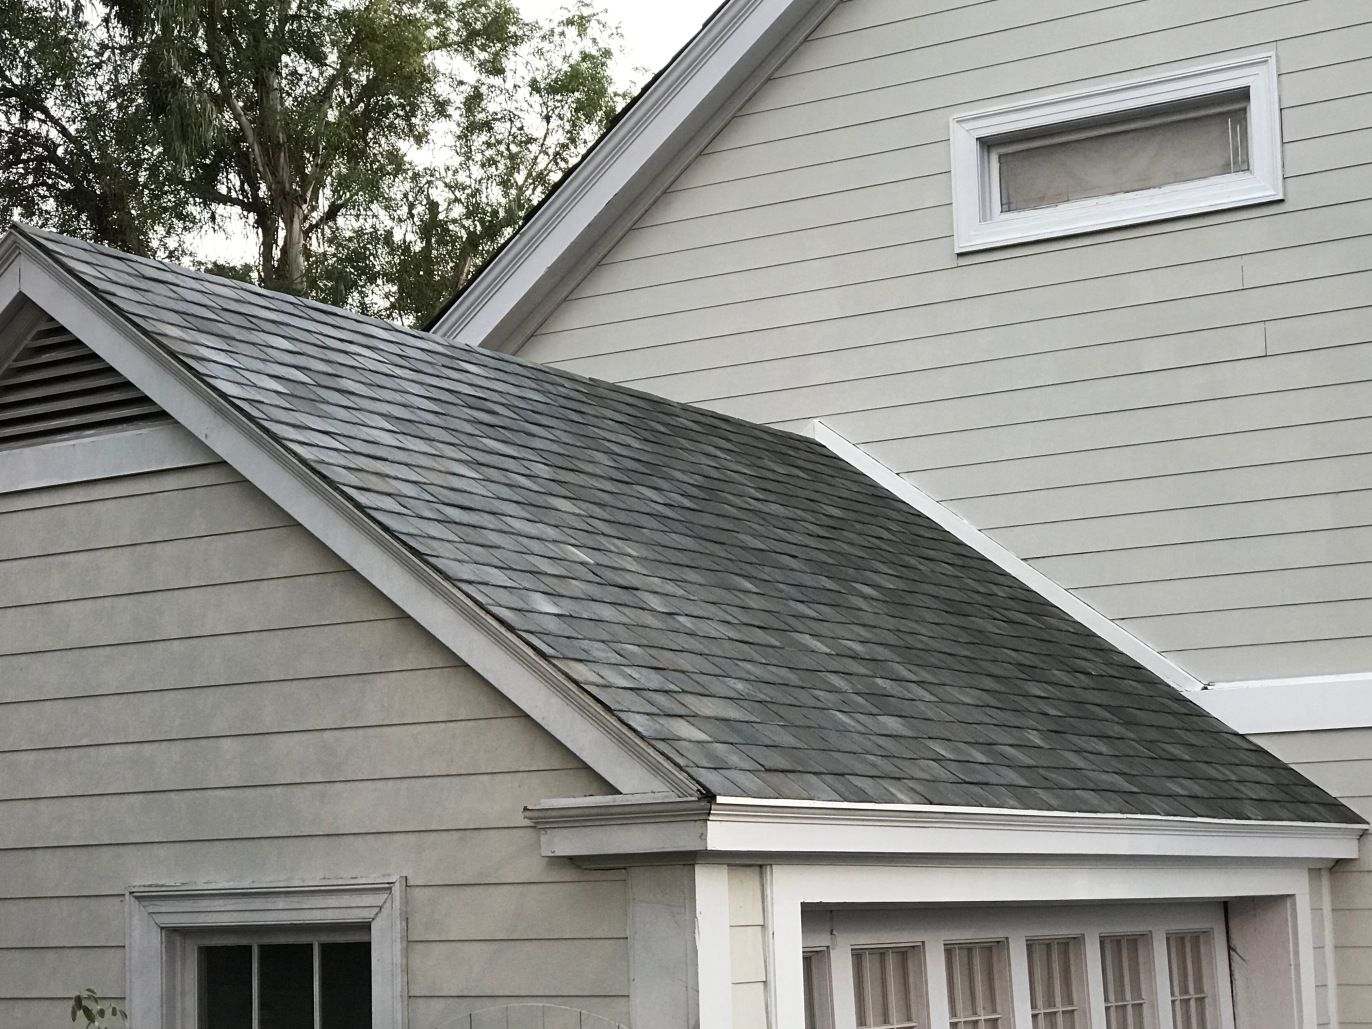 These Are Tesla S Stunning New Solar Roof Tiles For Homes With Images Solar Tiles